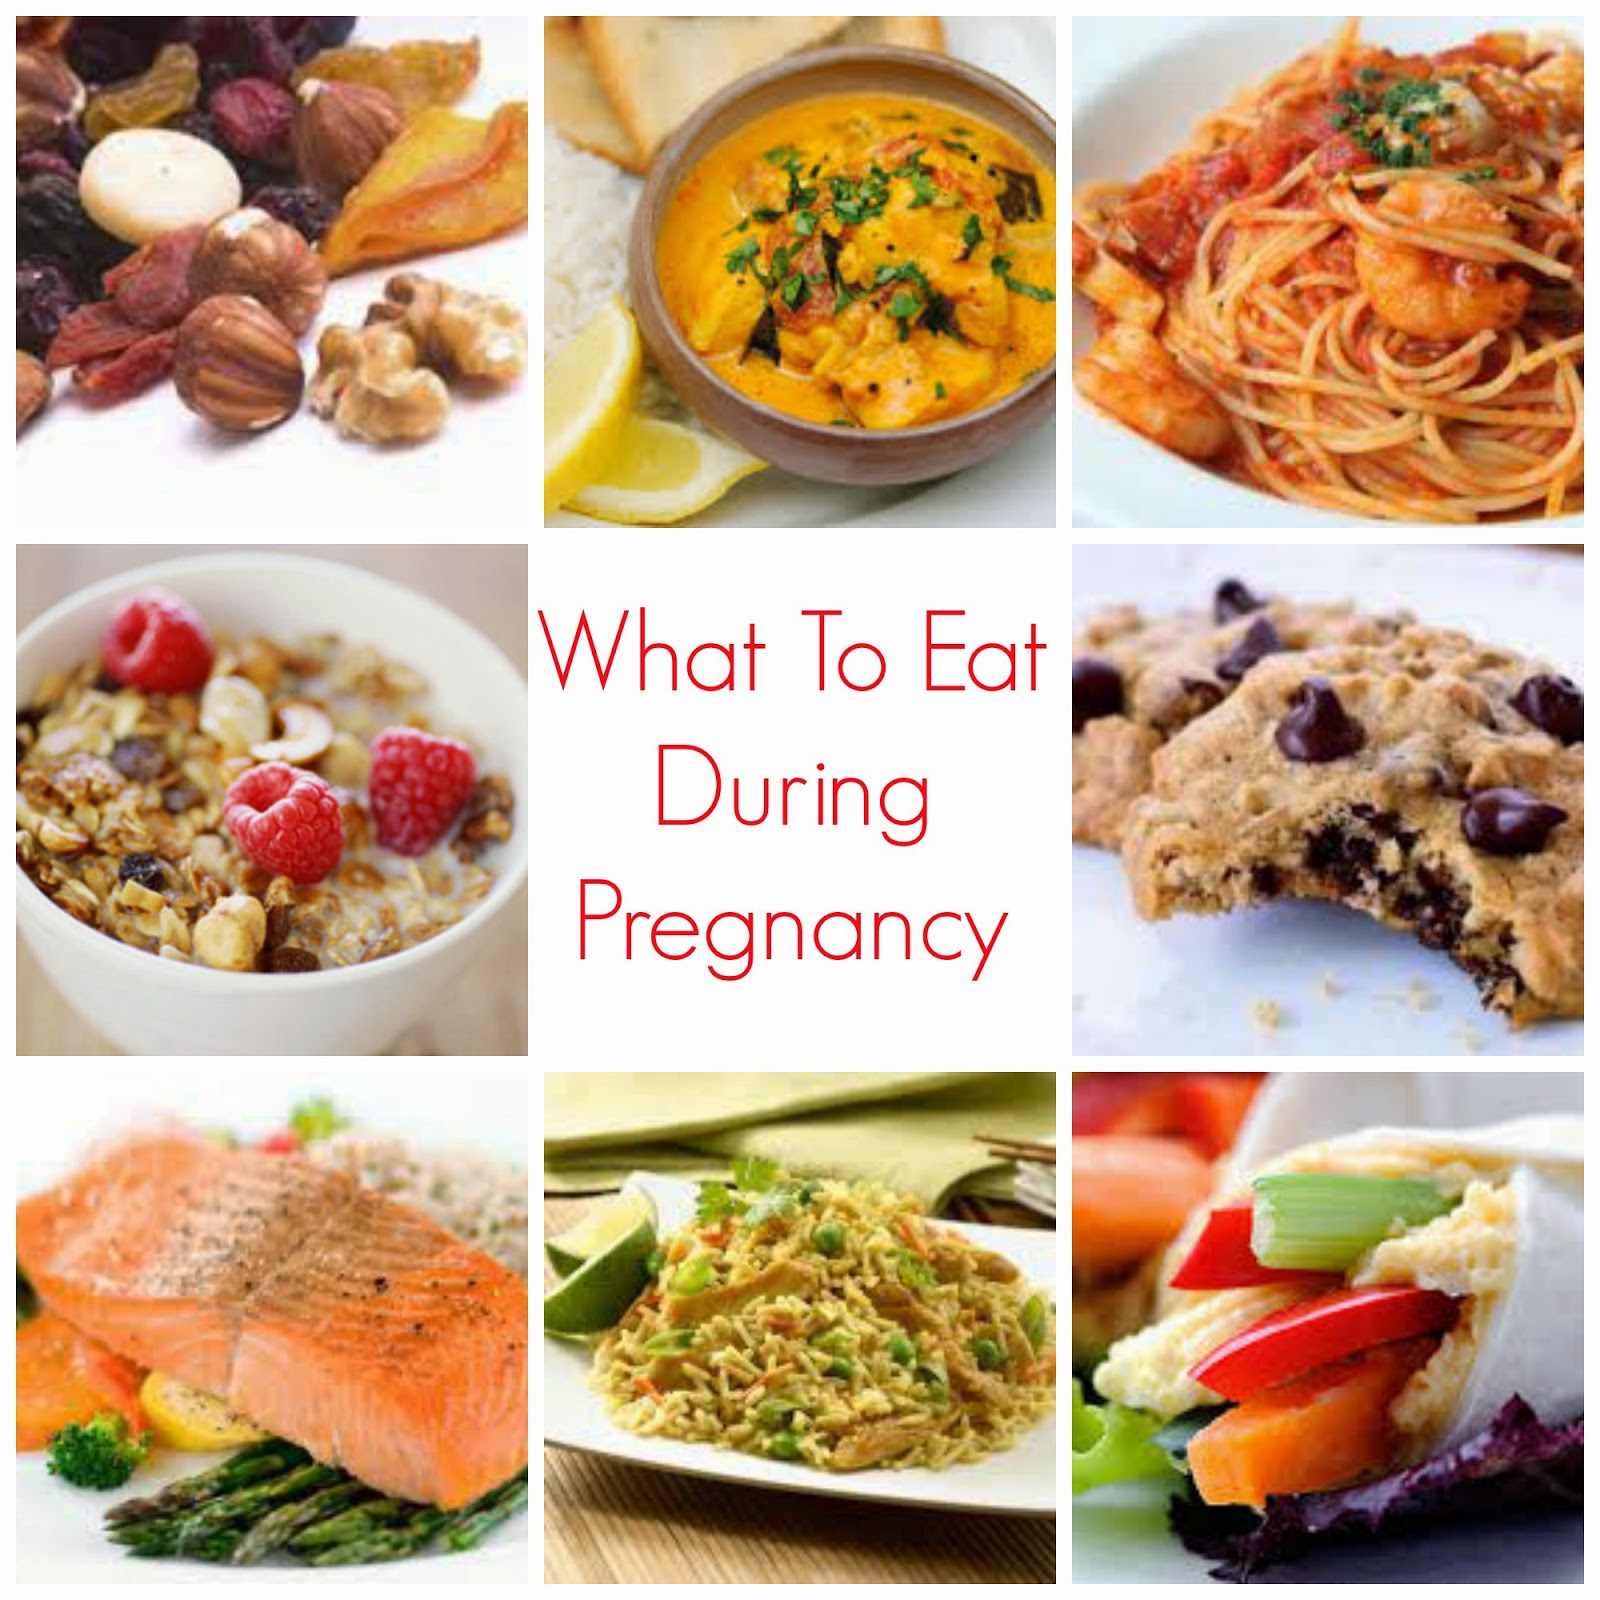 What Foods Are Healthy To Eat When Pregnant